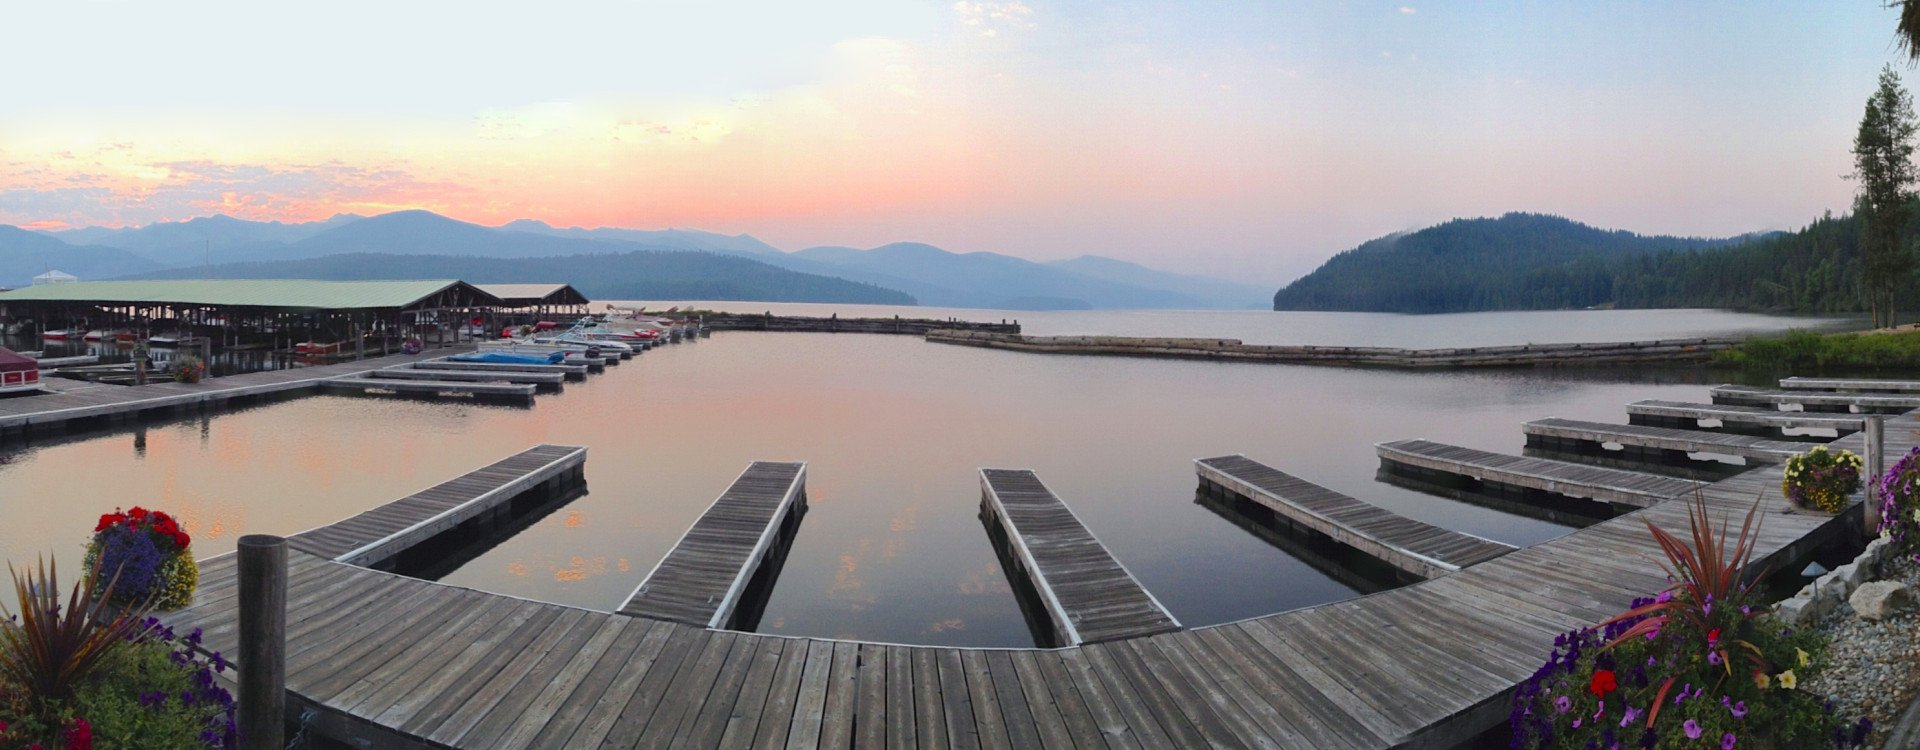 Elkins Resort nestled on Priest Lake